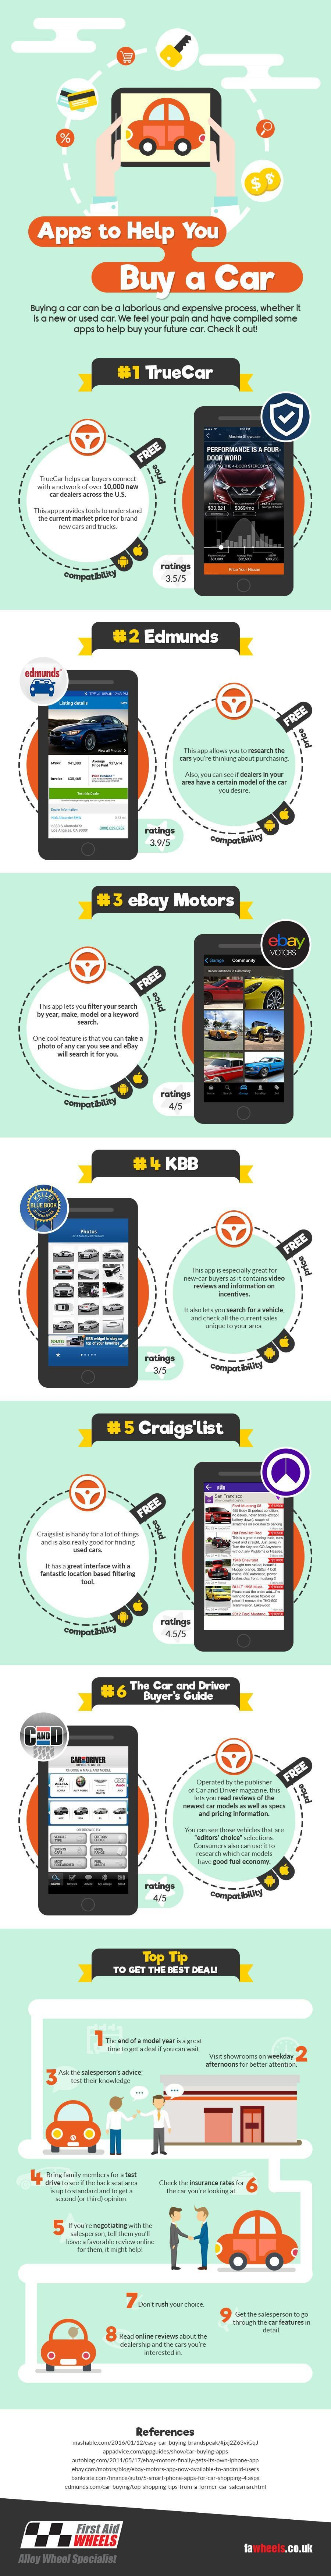 Apps to Help You Buy a Car- An Infographic